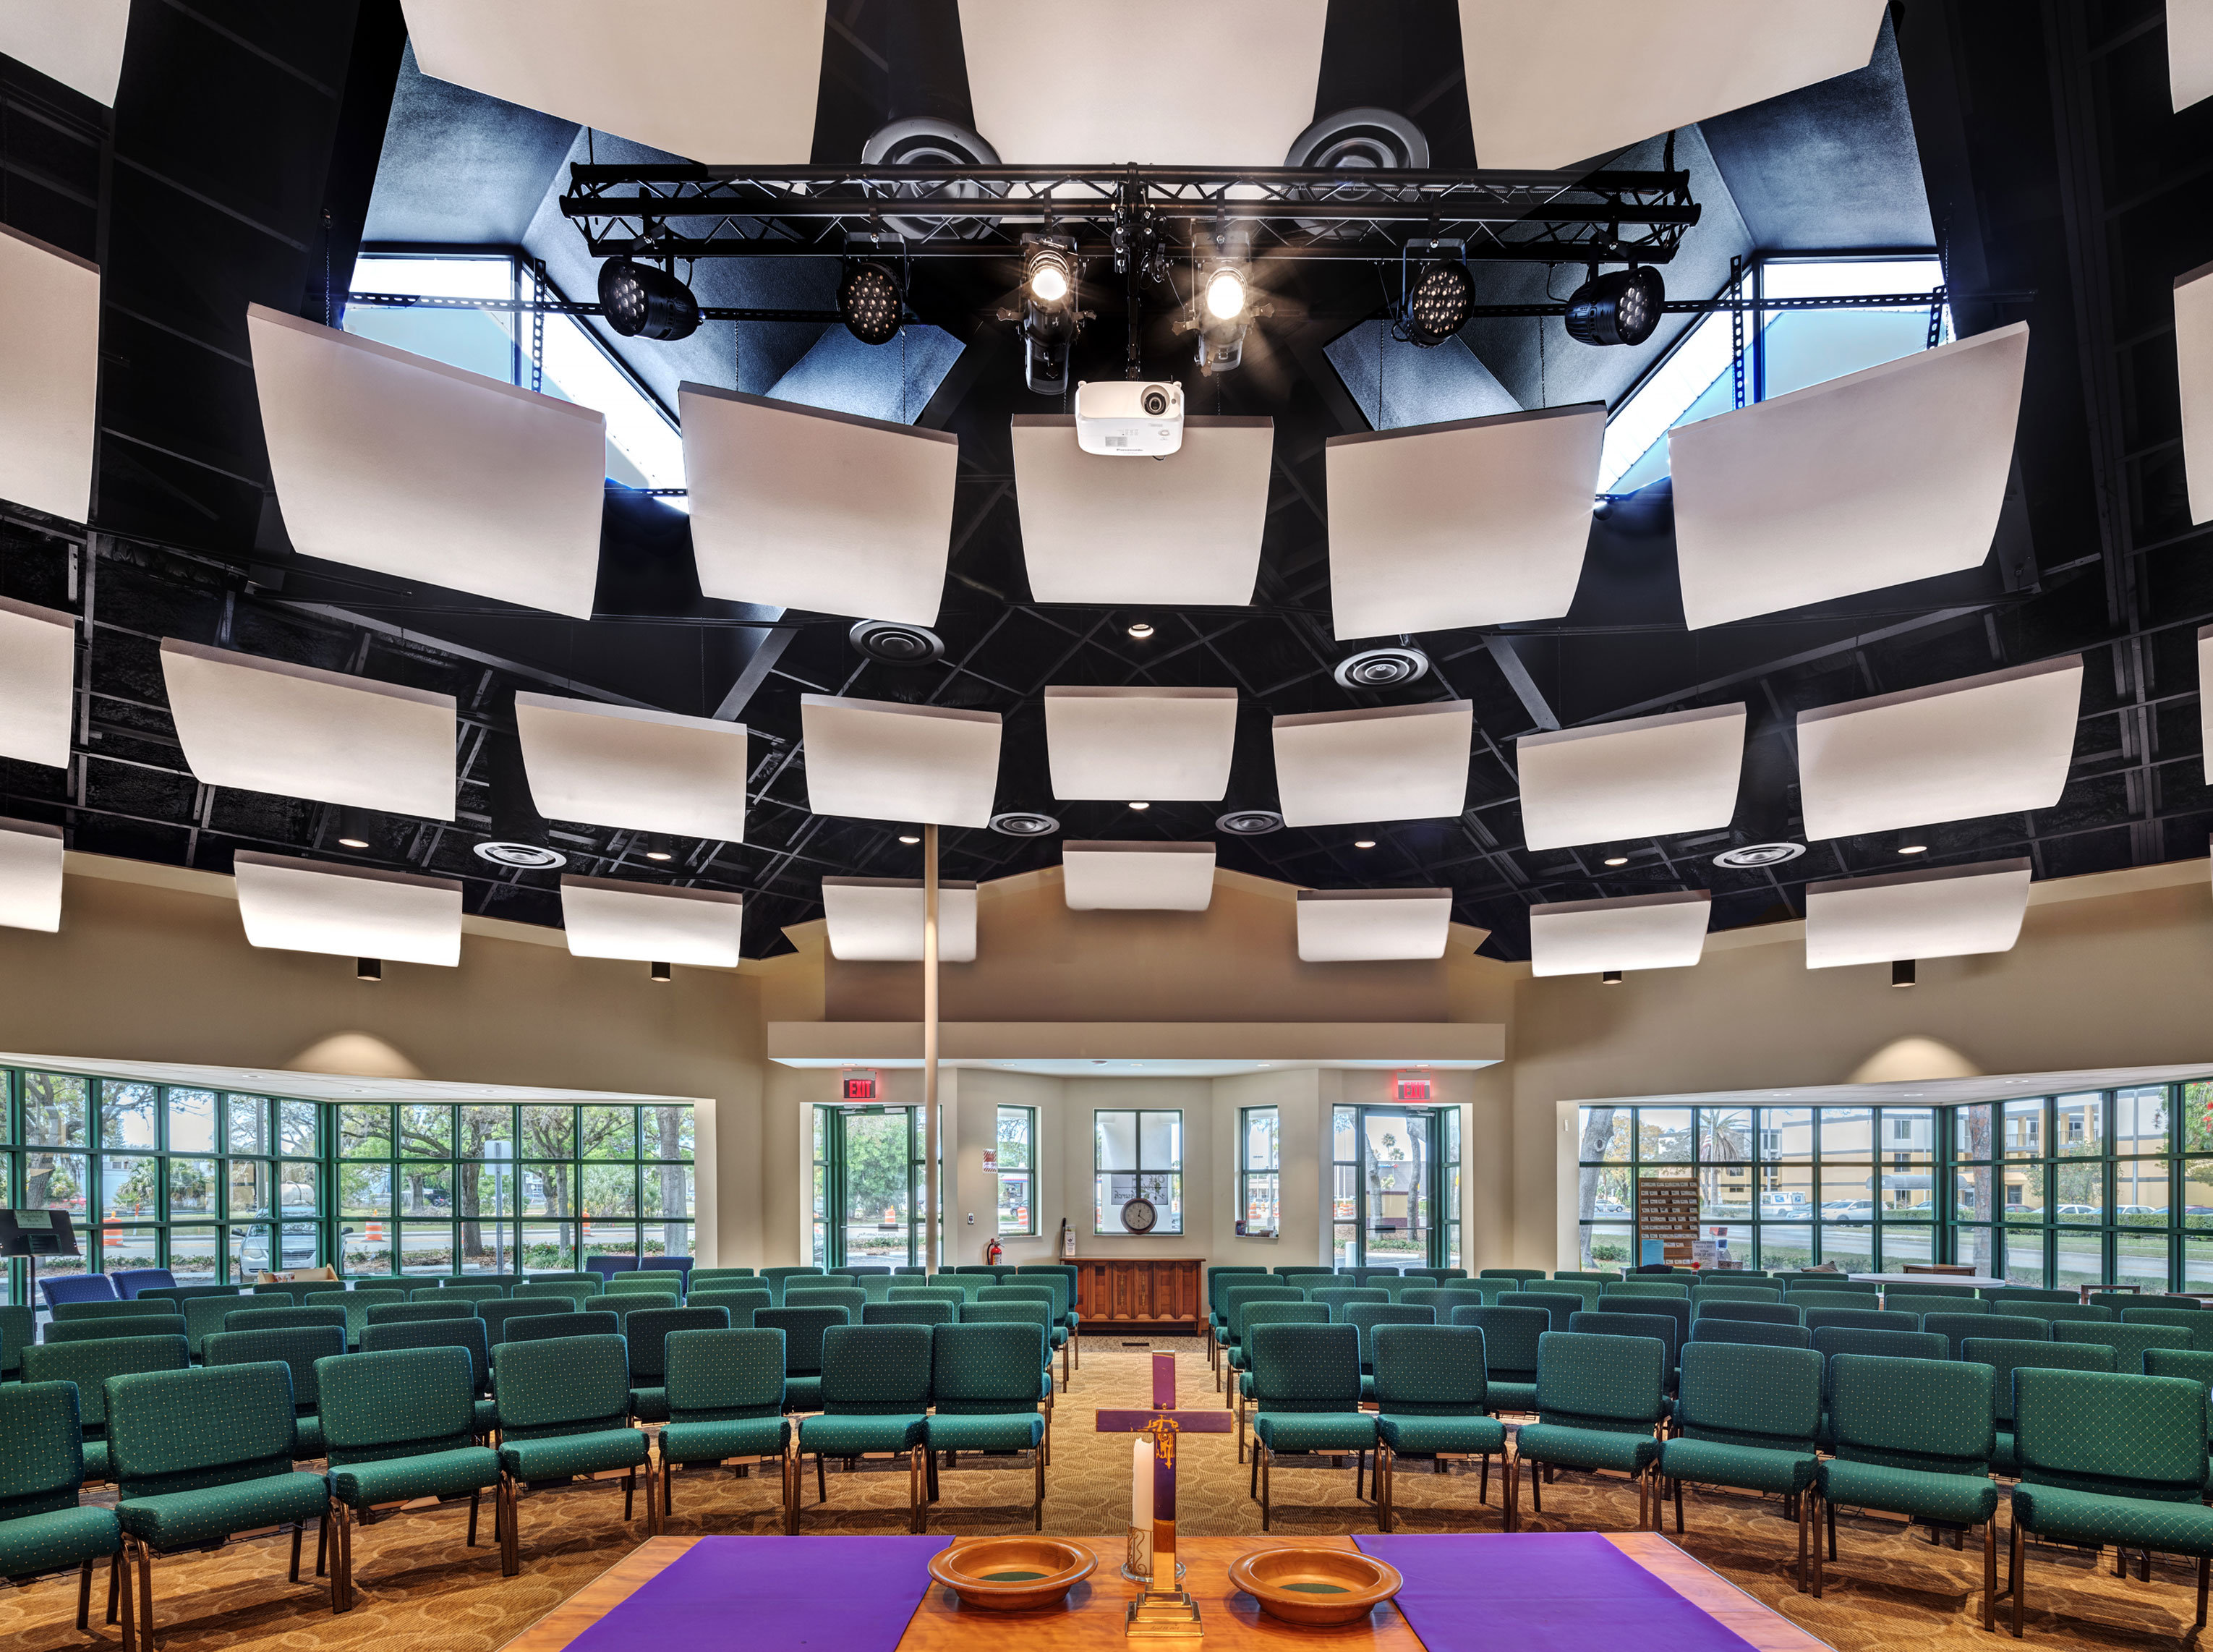 Fiberglass Panels - Ceiling Clouds acoustic treatments. Shown here suspended with T-Grid